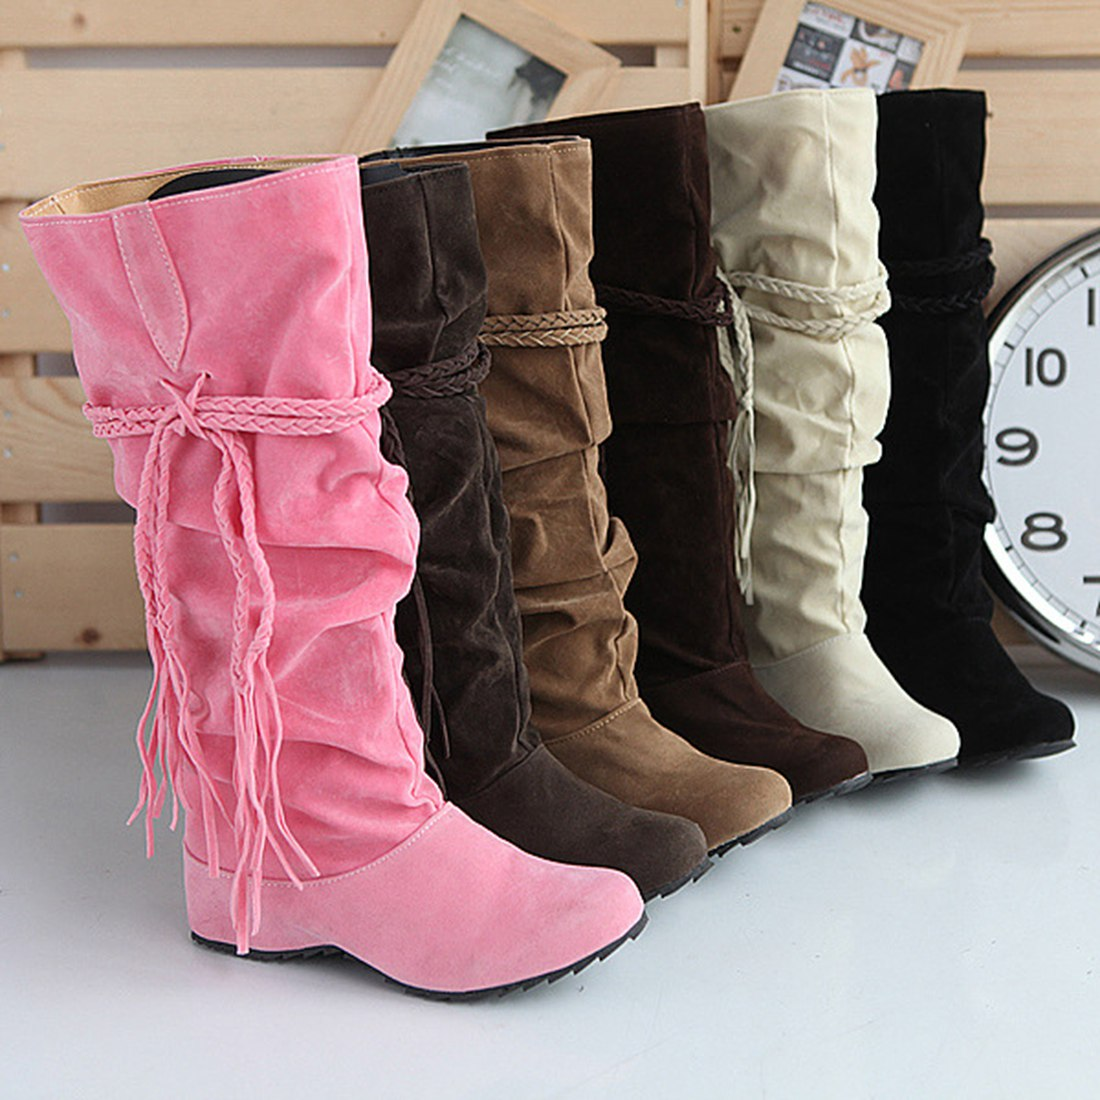 Fashion Women Jackboots Mid calf Boots Leisure Knee High Suede Tassel Flat  Shoes Girls Sweet Increased within Boots-in Mid-Calf Boots from Shoes on ...